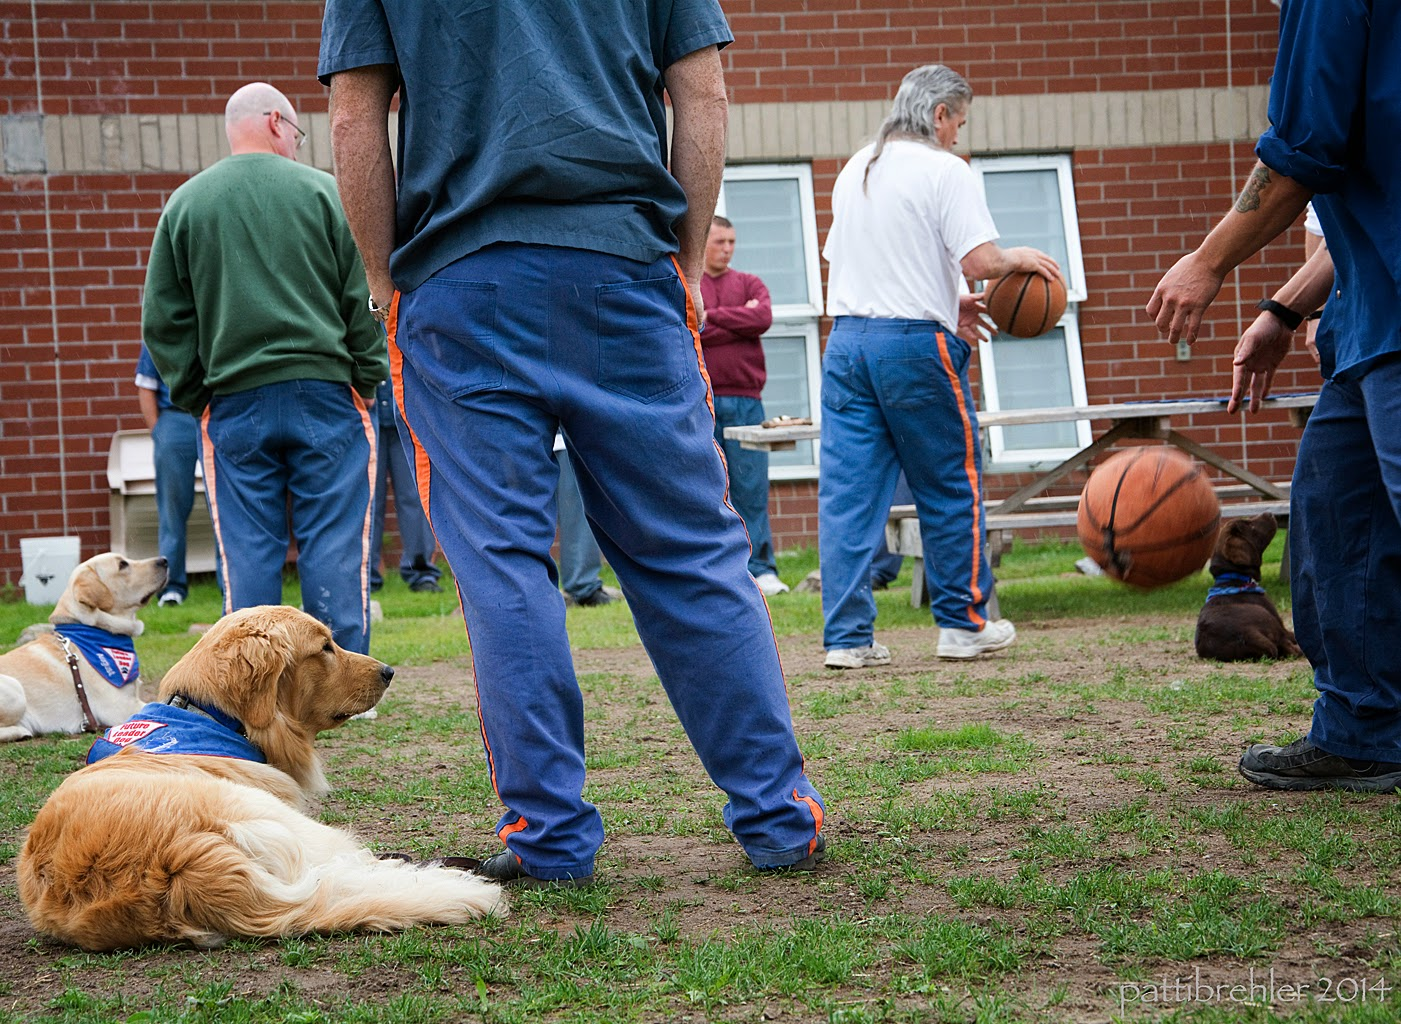 An outside shot of the prison puppy raisers demonstrating their performance. Two golden retrievers on the left and one chocolate lab on the right are lying down on the grass; two men are visible standing next to the goldens on the left, the nearest one is wearing the blue prison uniform, but his head is out of the frame. The furthest man is wearing the prison blue pants and a green sweatshrit. A man wearing a white t-shirt and prison blue pants is bouncing a basketball past the puppies. Another man dressed in the prison blue uniform is also bouncing a basketball. In the background is the brick wall of the prison with a couple windows. A man wearing a maroon sweatshirt is in the background.